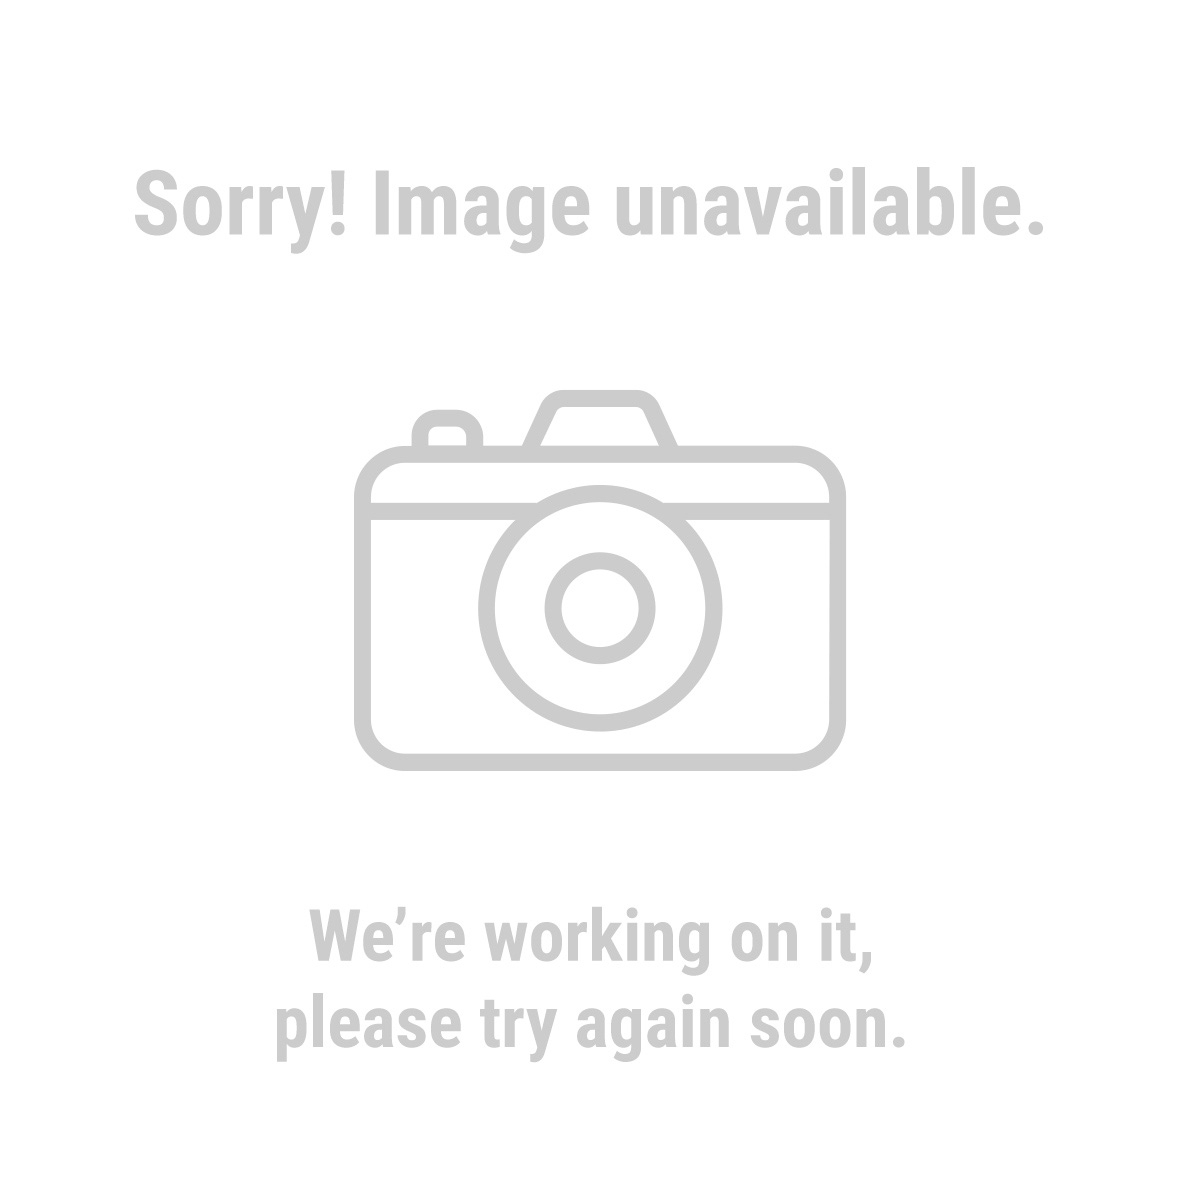 Golden Needles 30413 6 Pairs Two-Sided PVC Dot Gloves